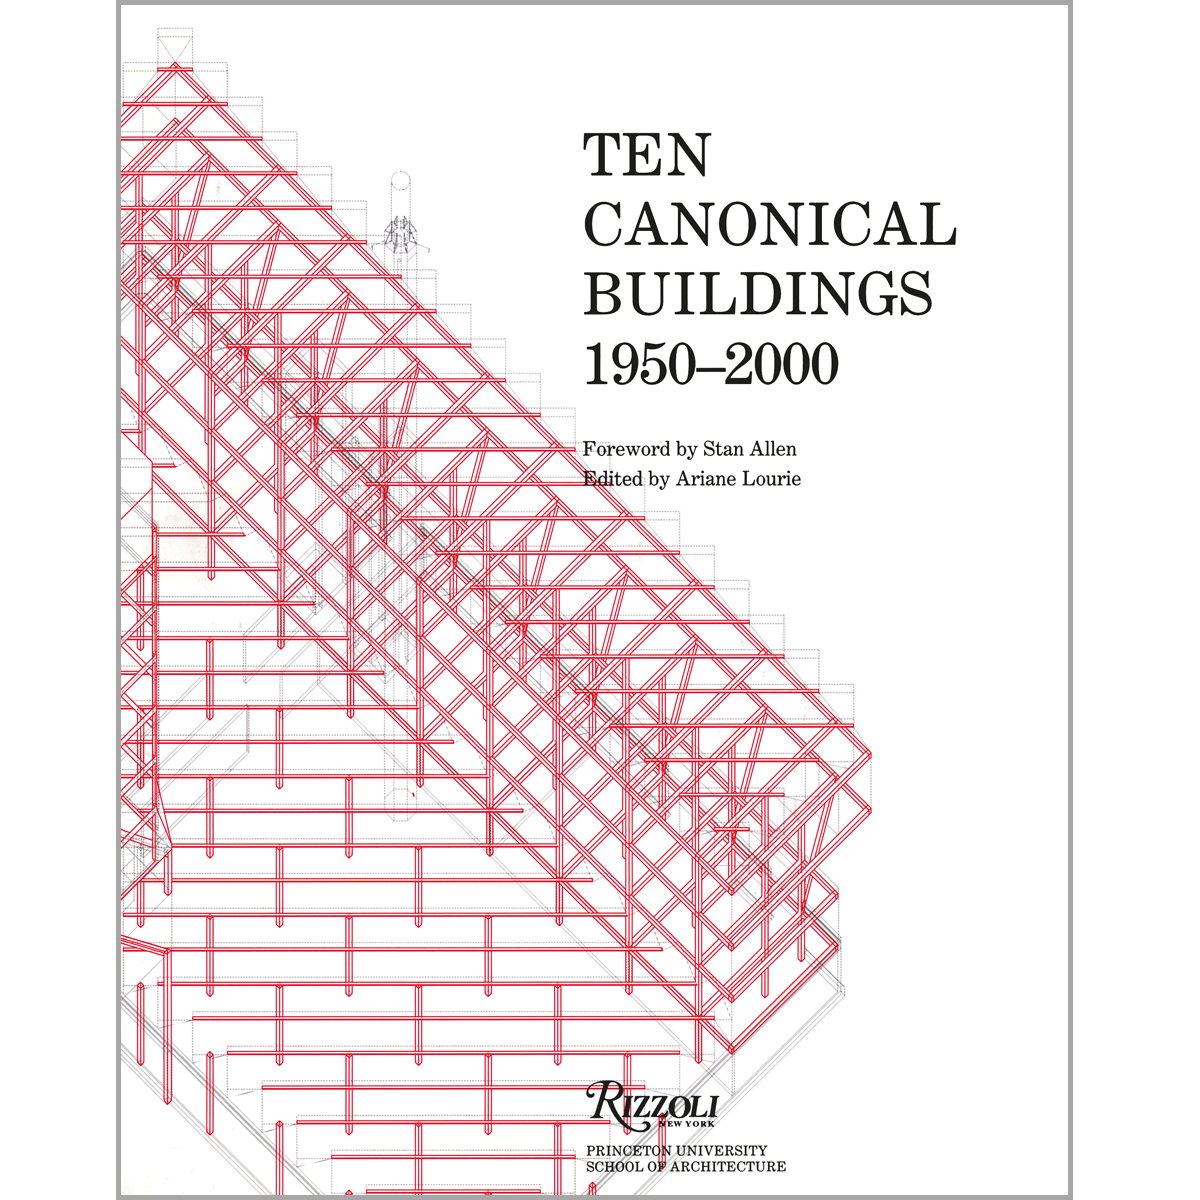 Ten Canonical Buildings, 1950-2000